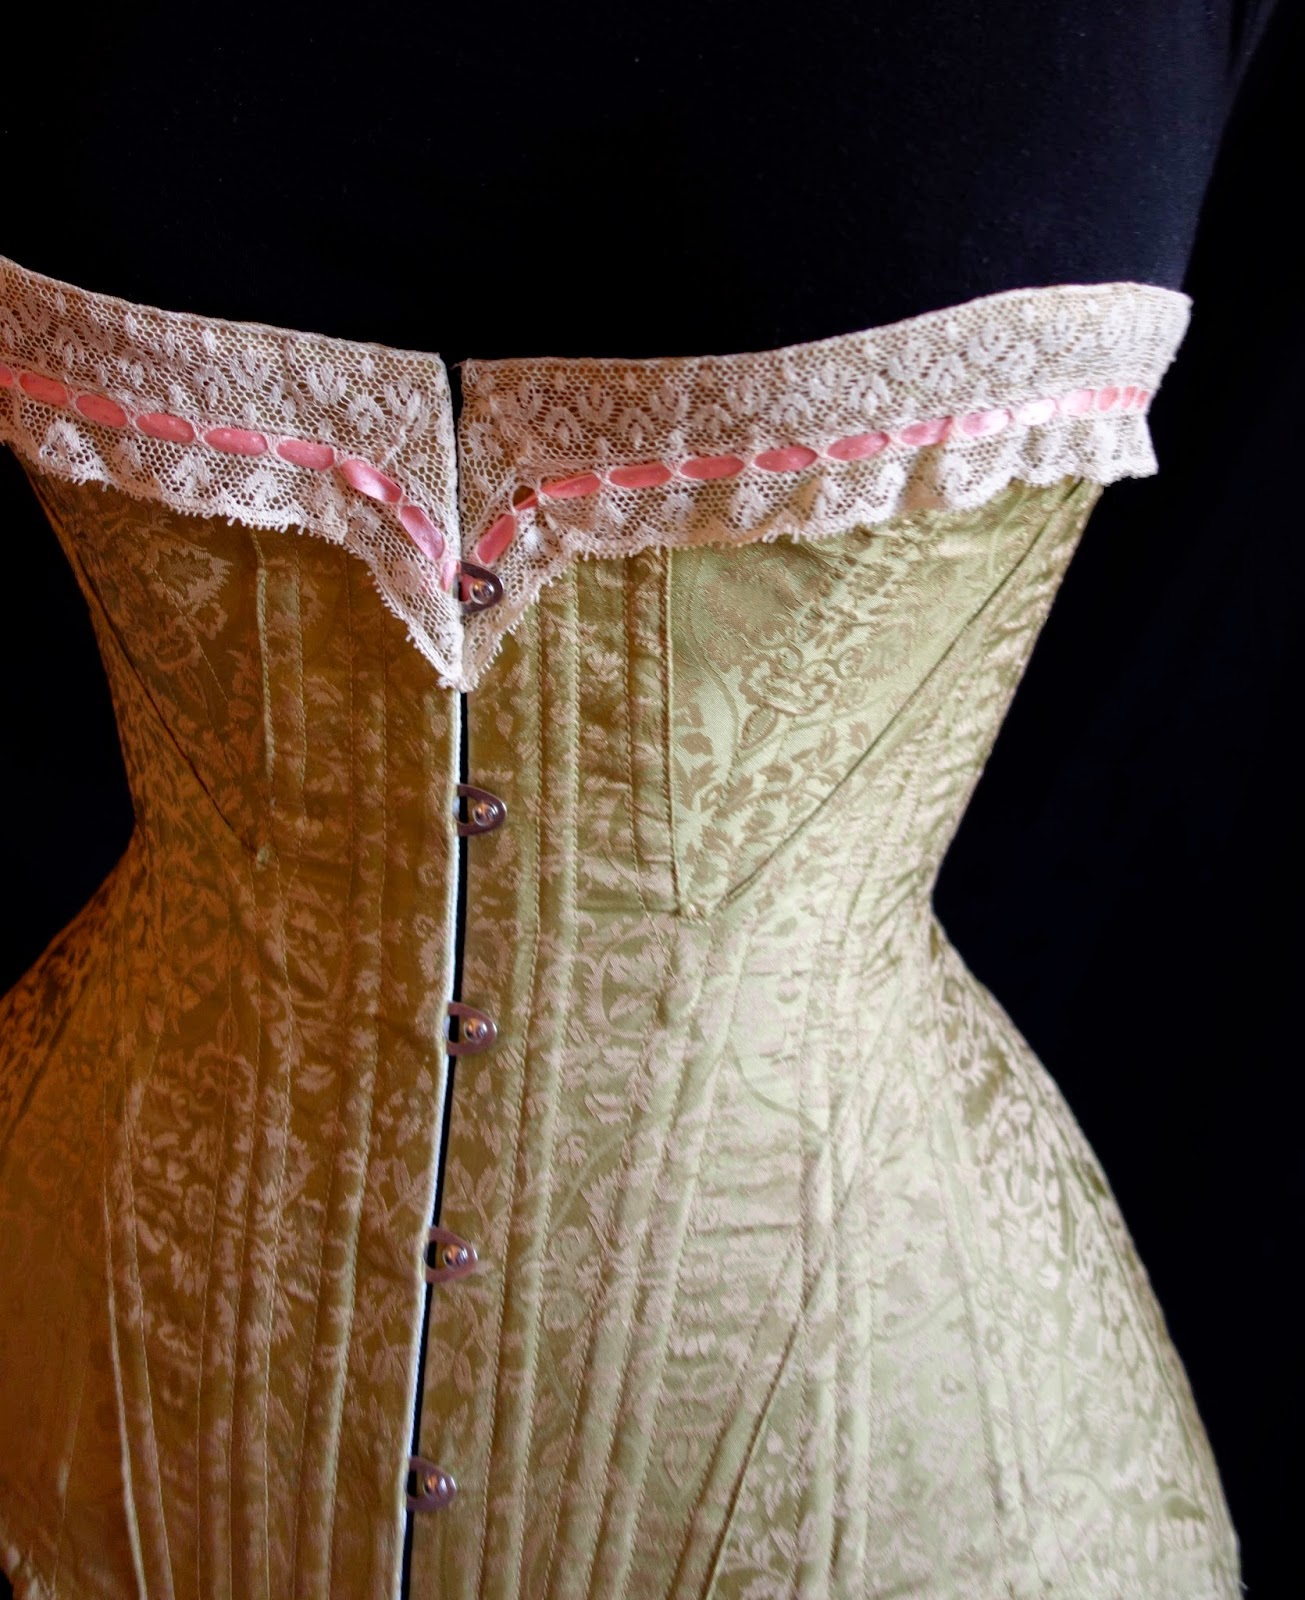 Festive Attyre: Edwardian corset and pattern review